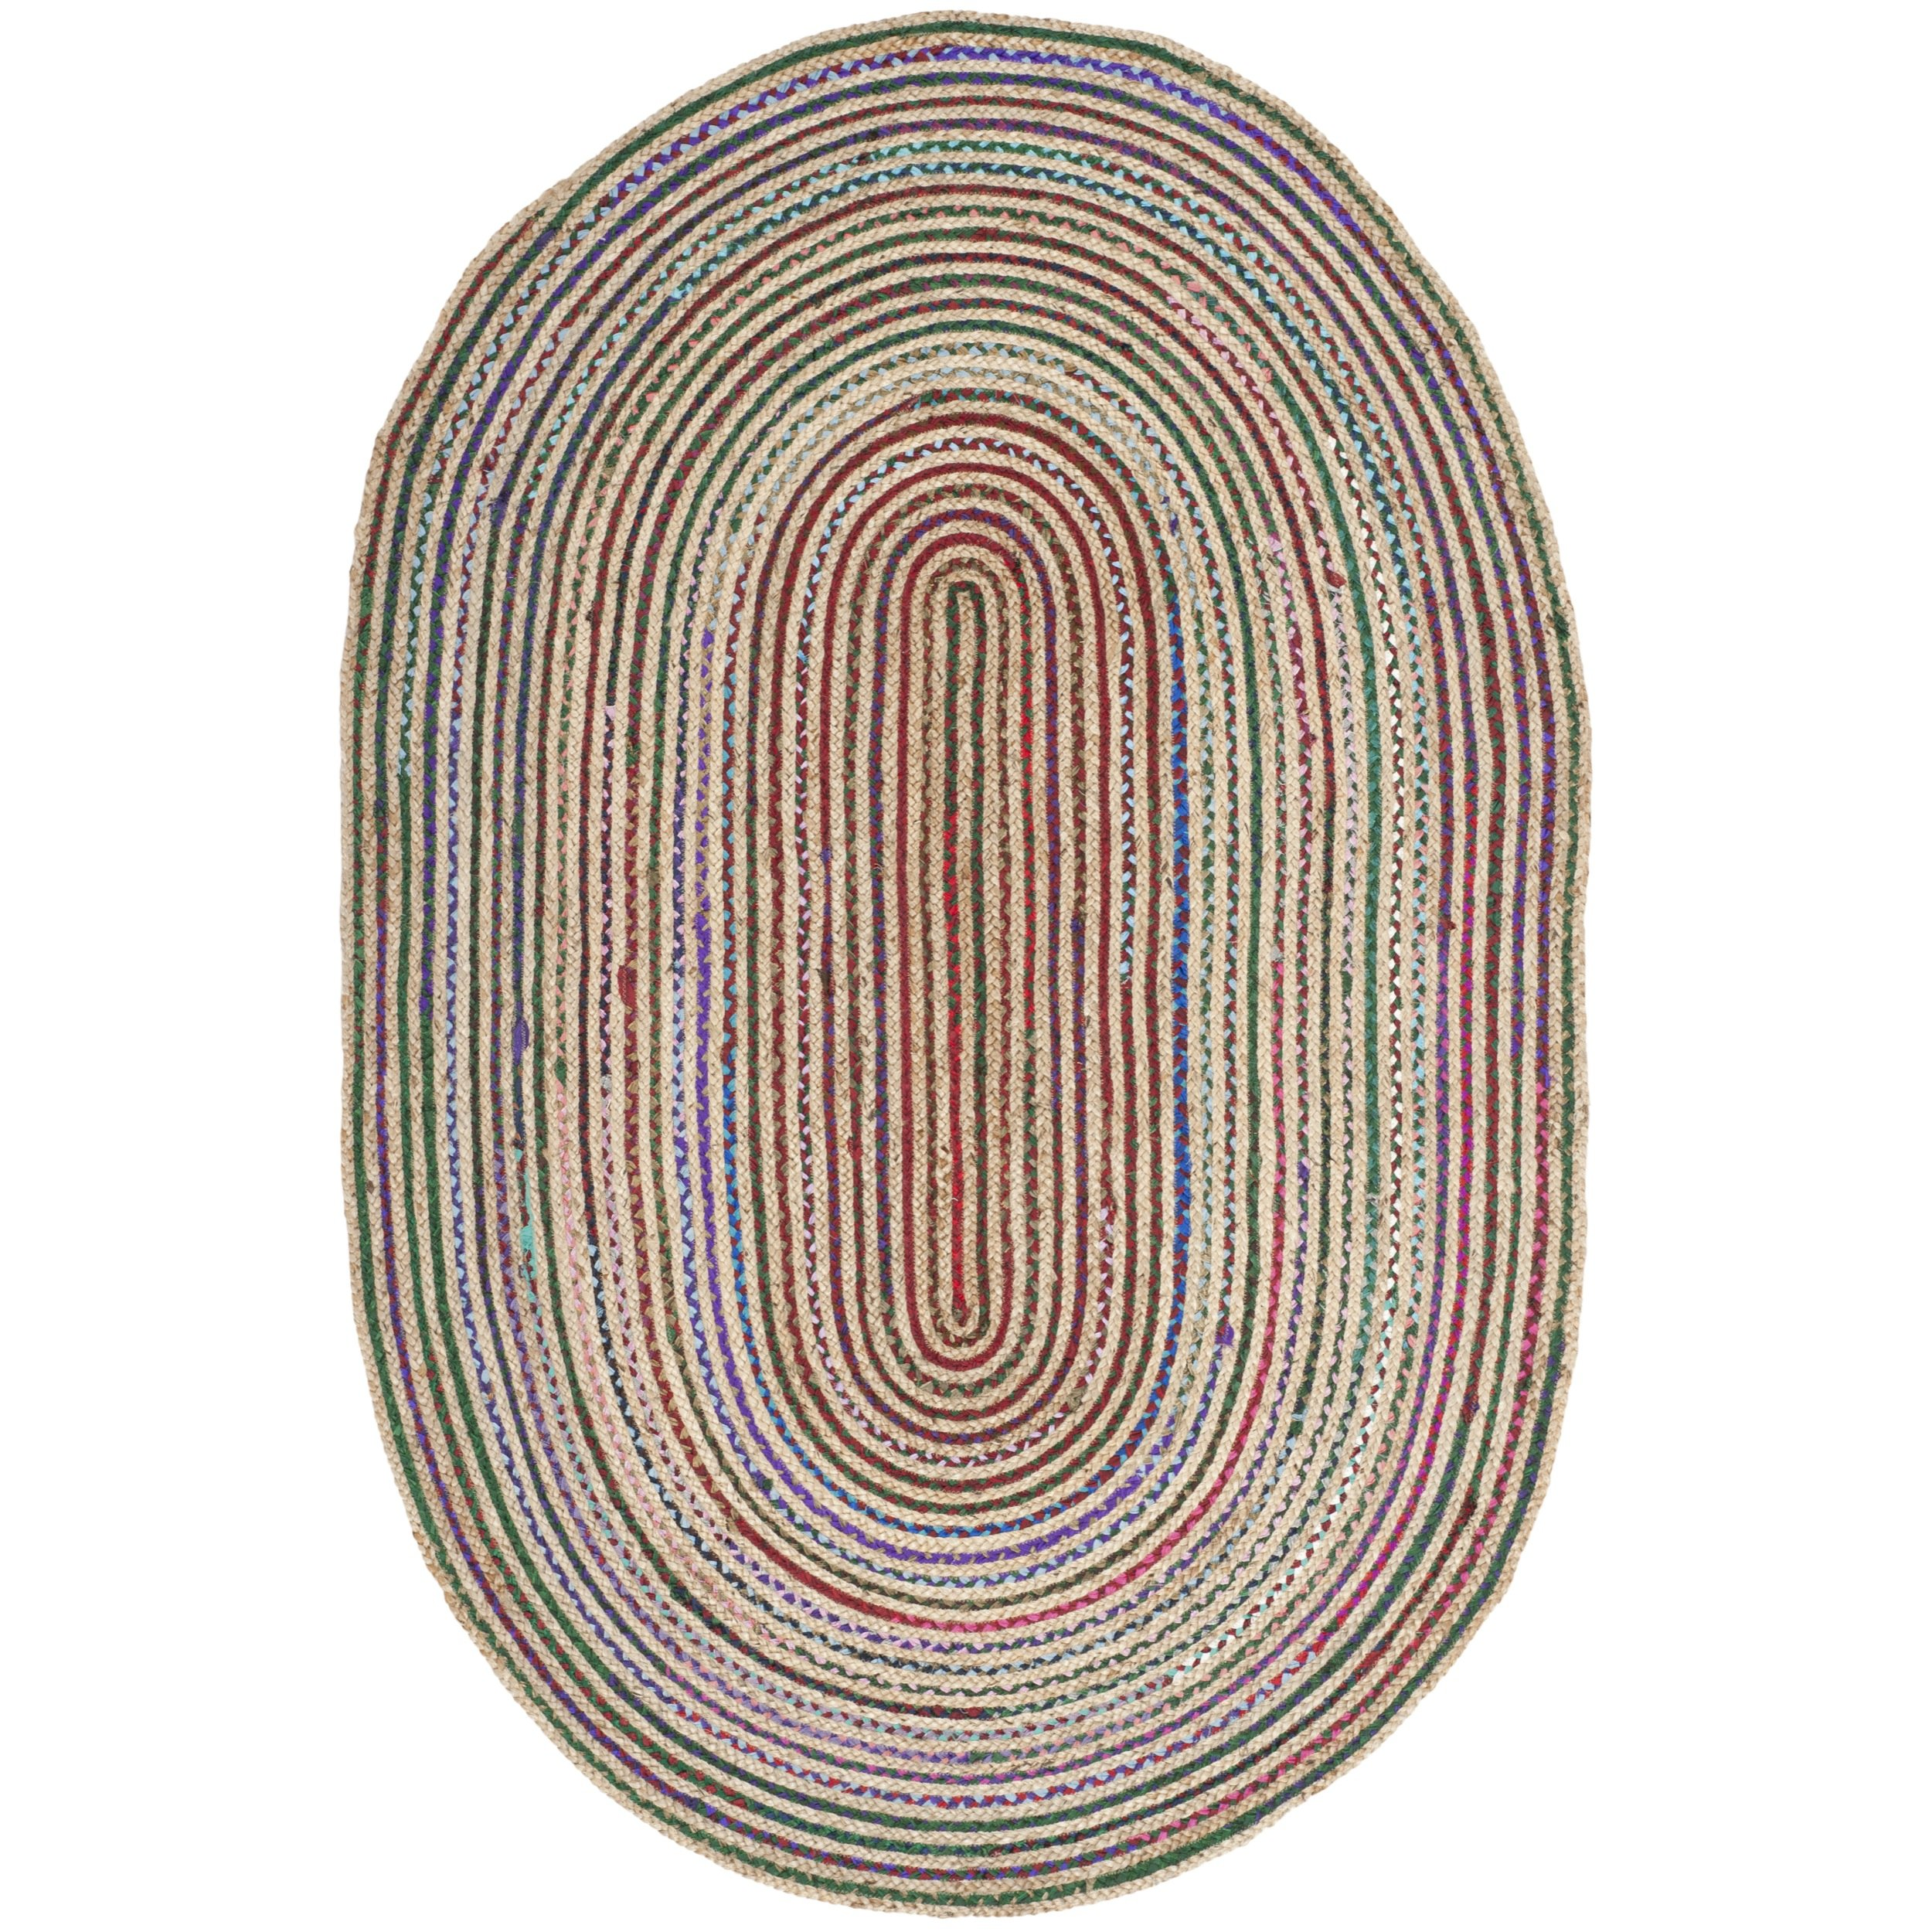 Safavieh Cape Cod Collection CAP251A Hand Woven Natural and Multicolored Jute Oval Area Rug (4' x 6')